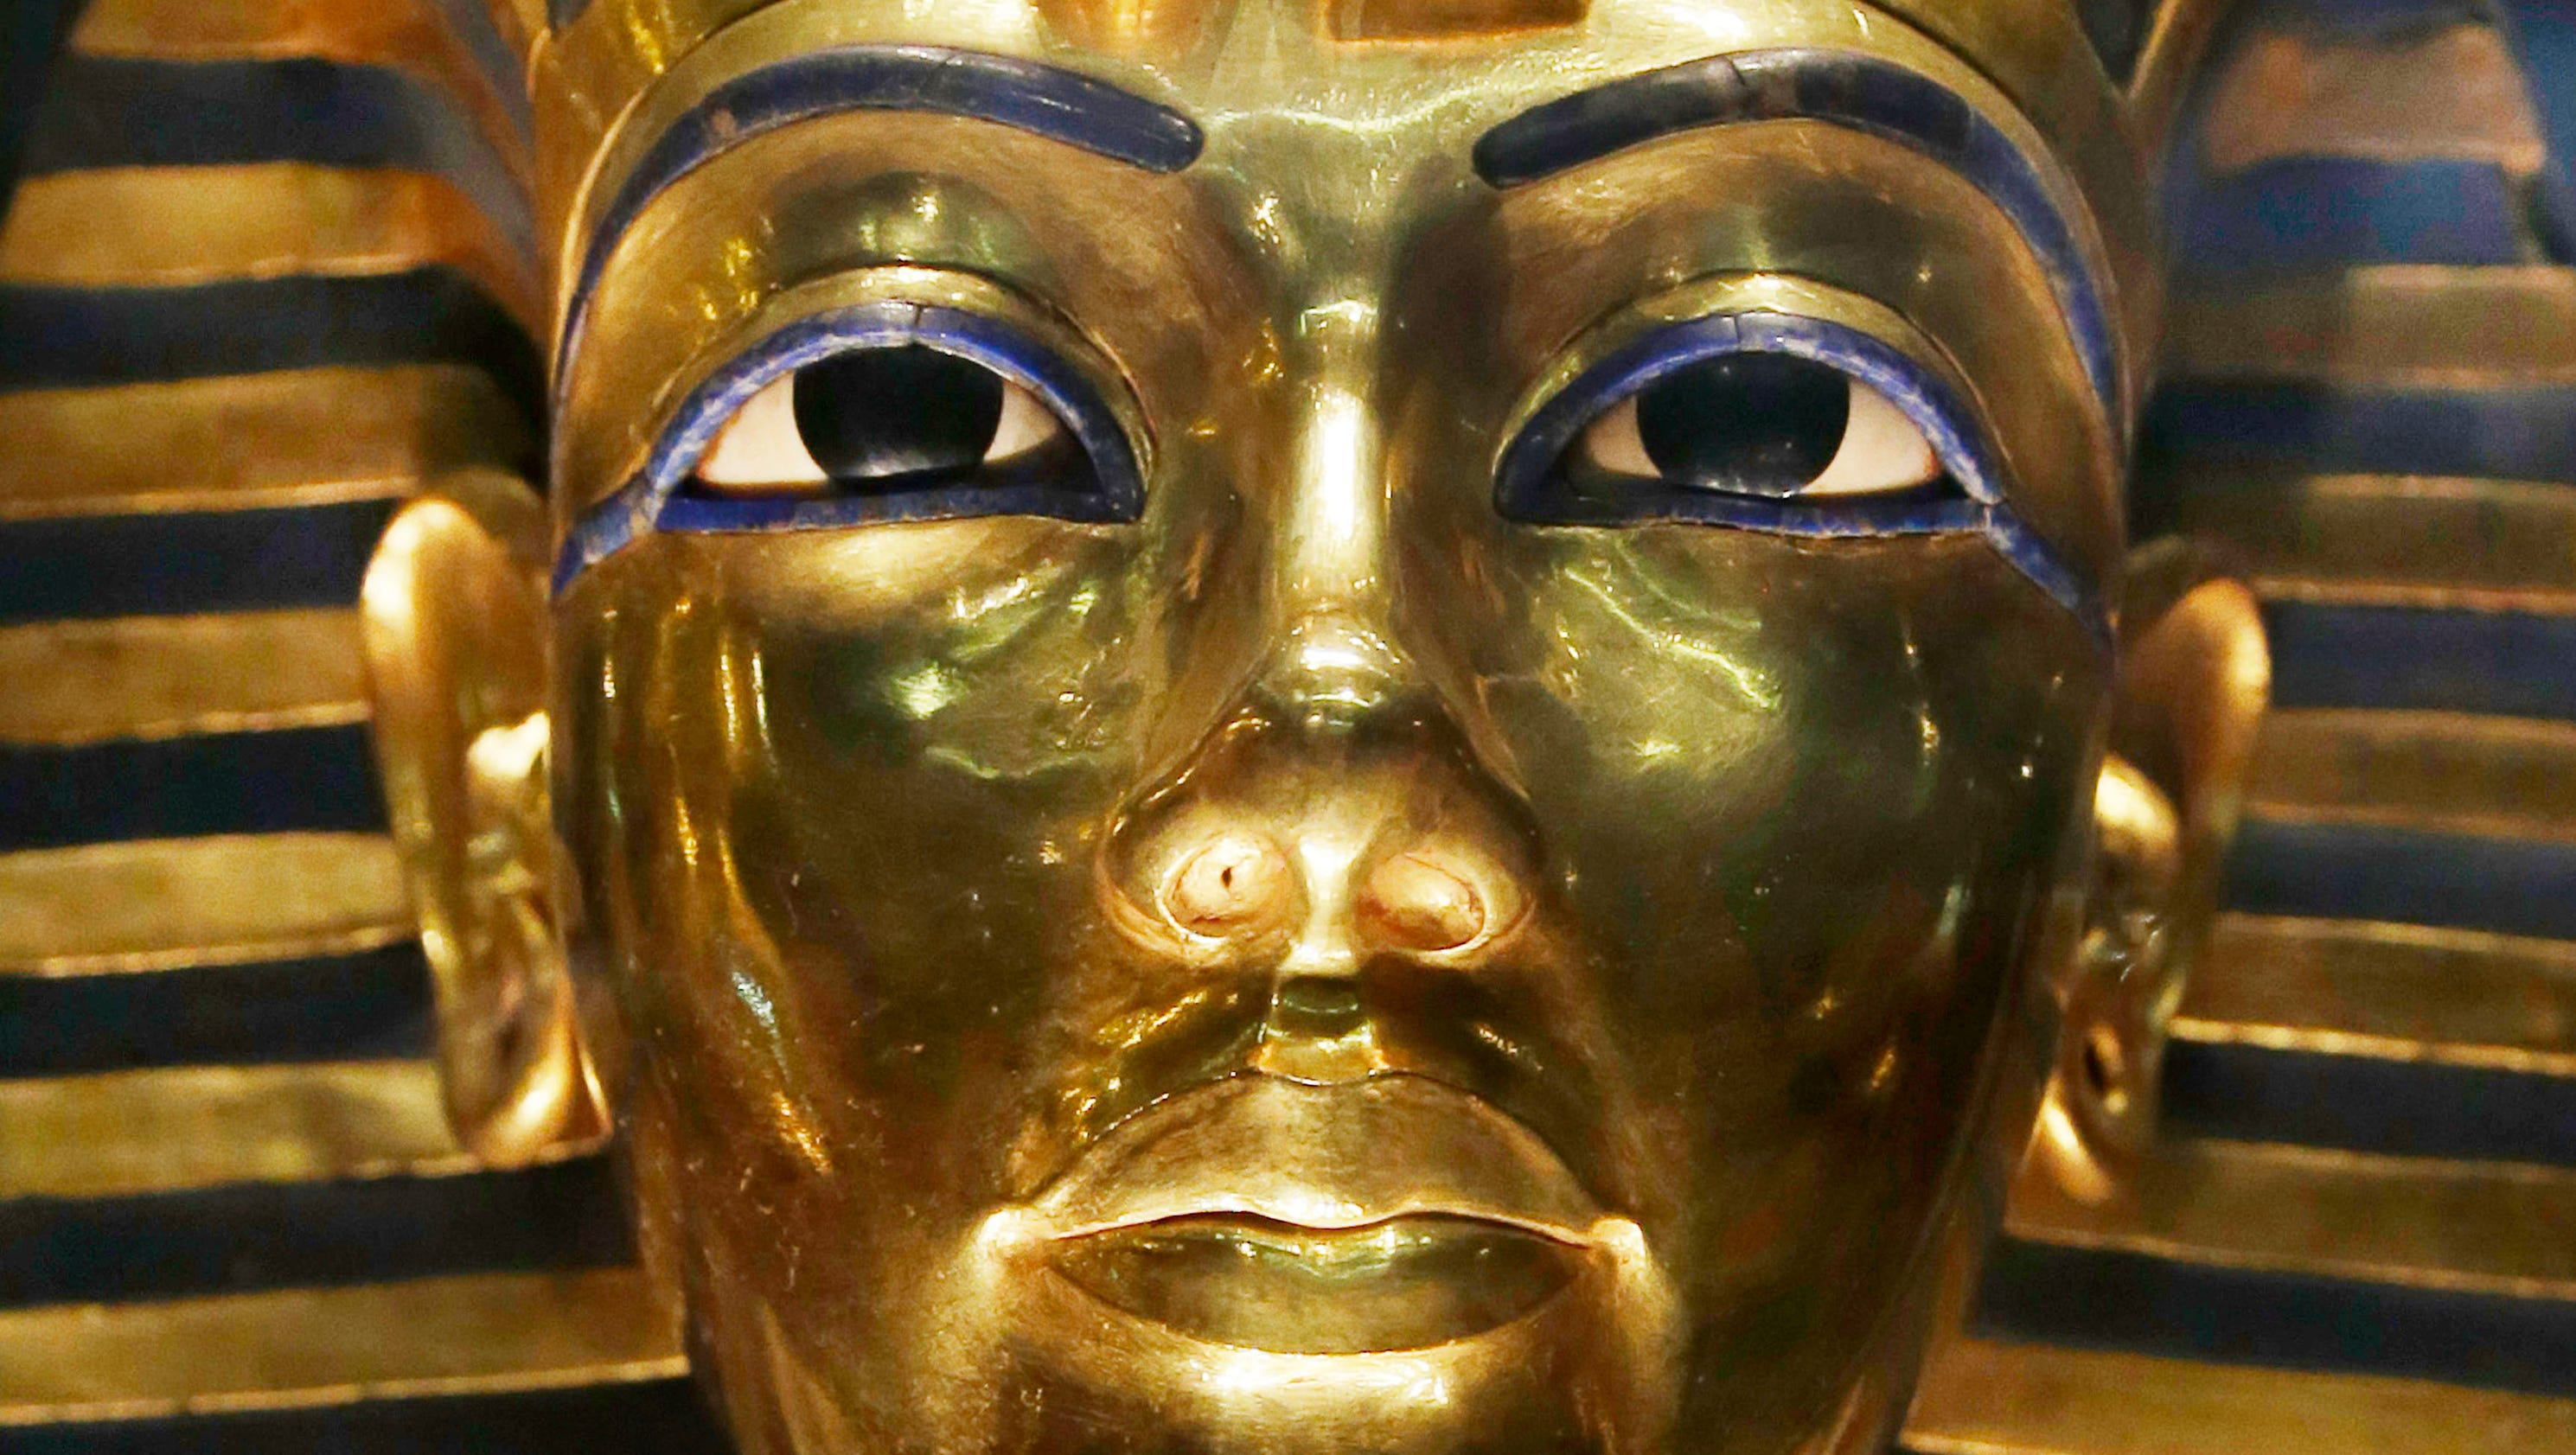 The Curse Of King Tuts Tomb Torrent: Scans Of King Tut's Burial Tomb Show Hidden Rooms